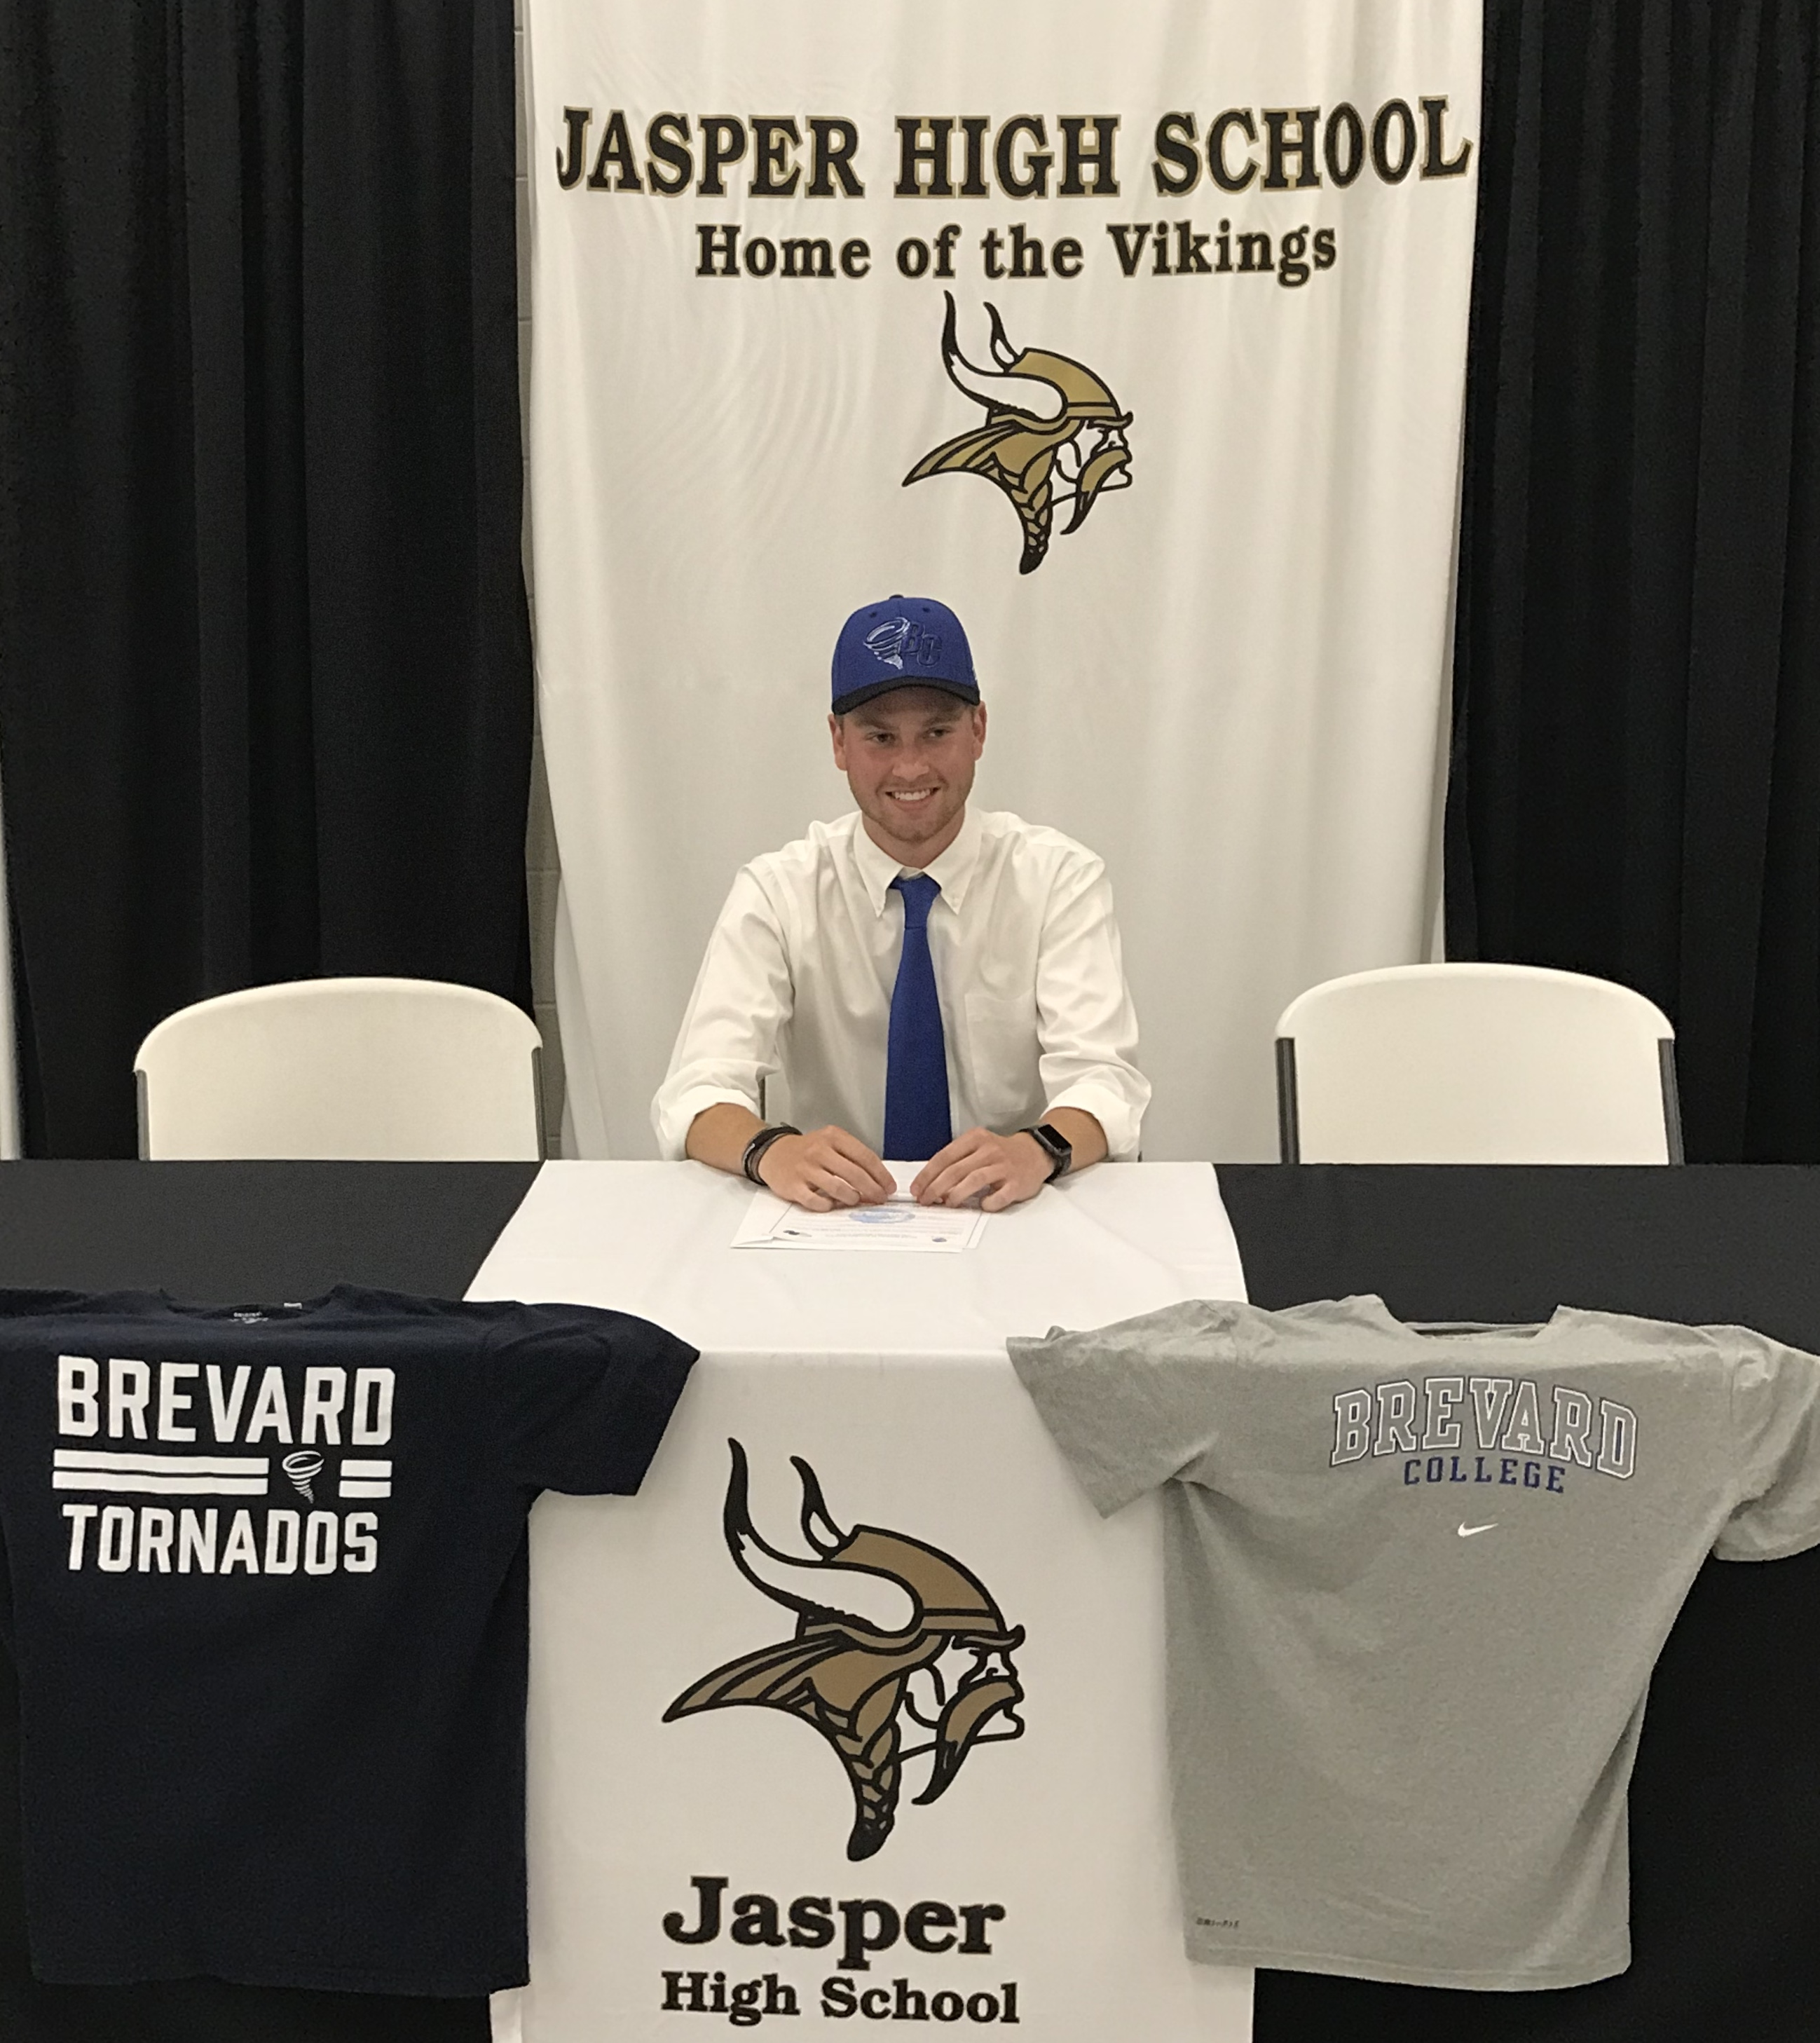 Jent To Play Golf At Brevard College